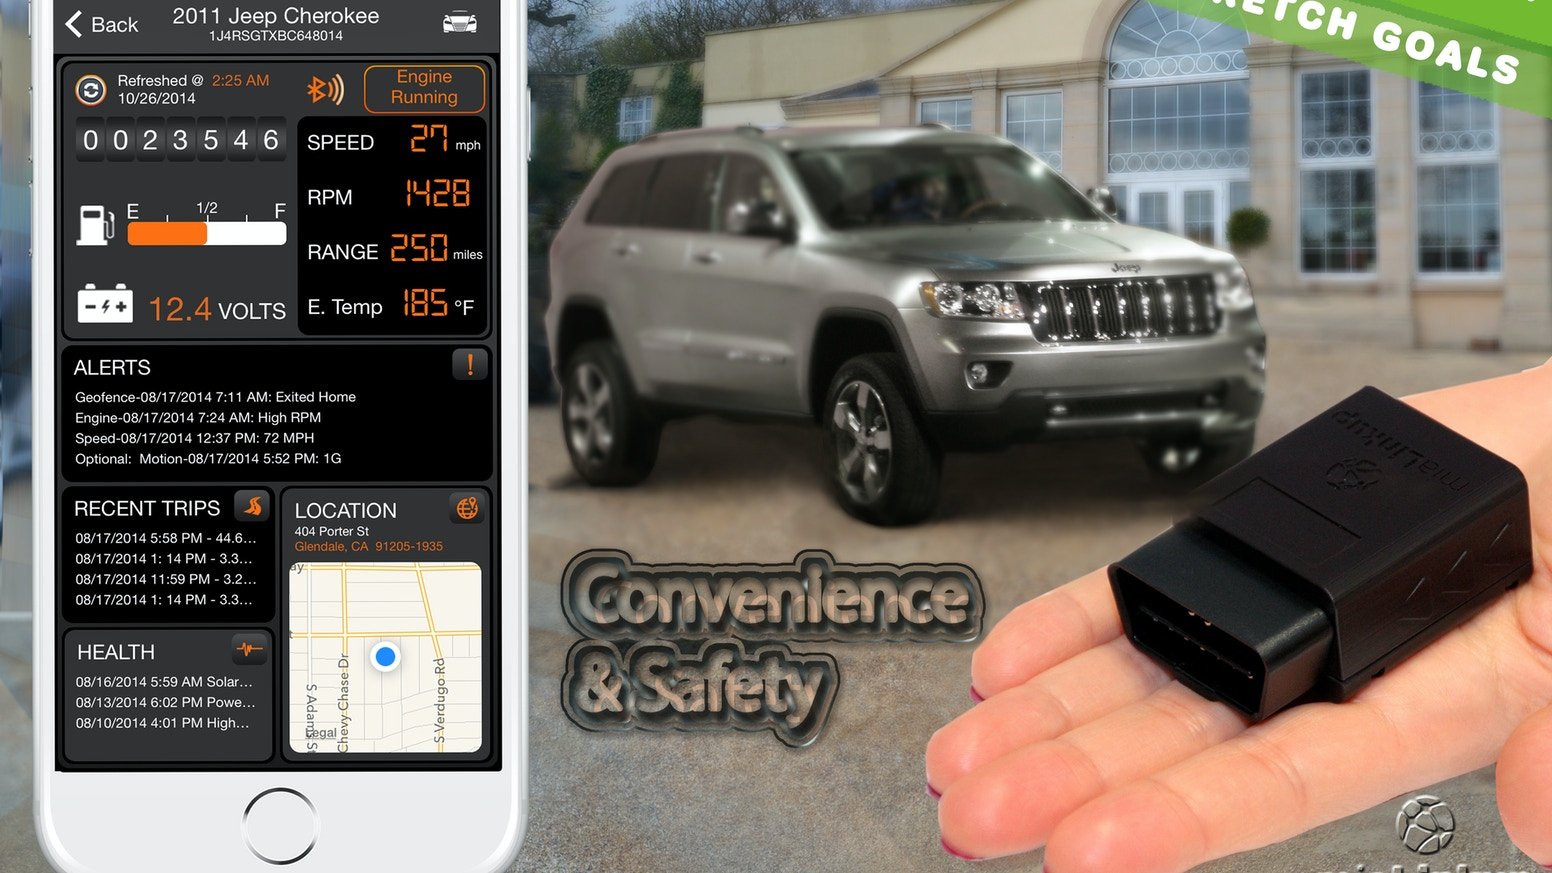 Mialinkup A New Direction In Connected Car And Iot By Of 3 Phase Motor Starter On June 16 2014 1 Comments Kickstarter